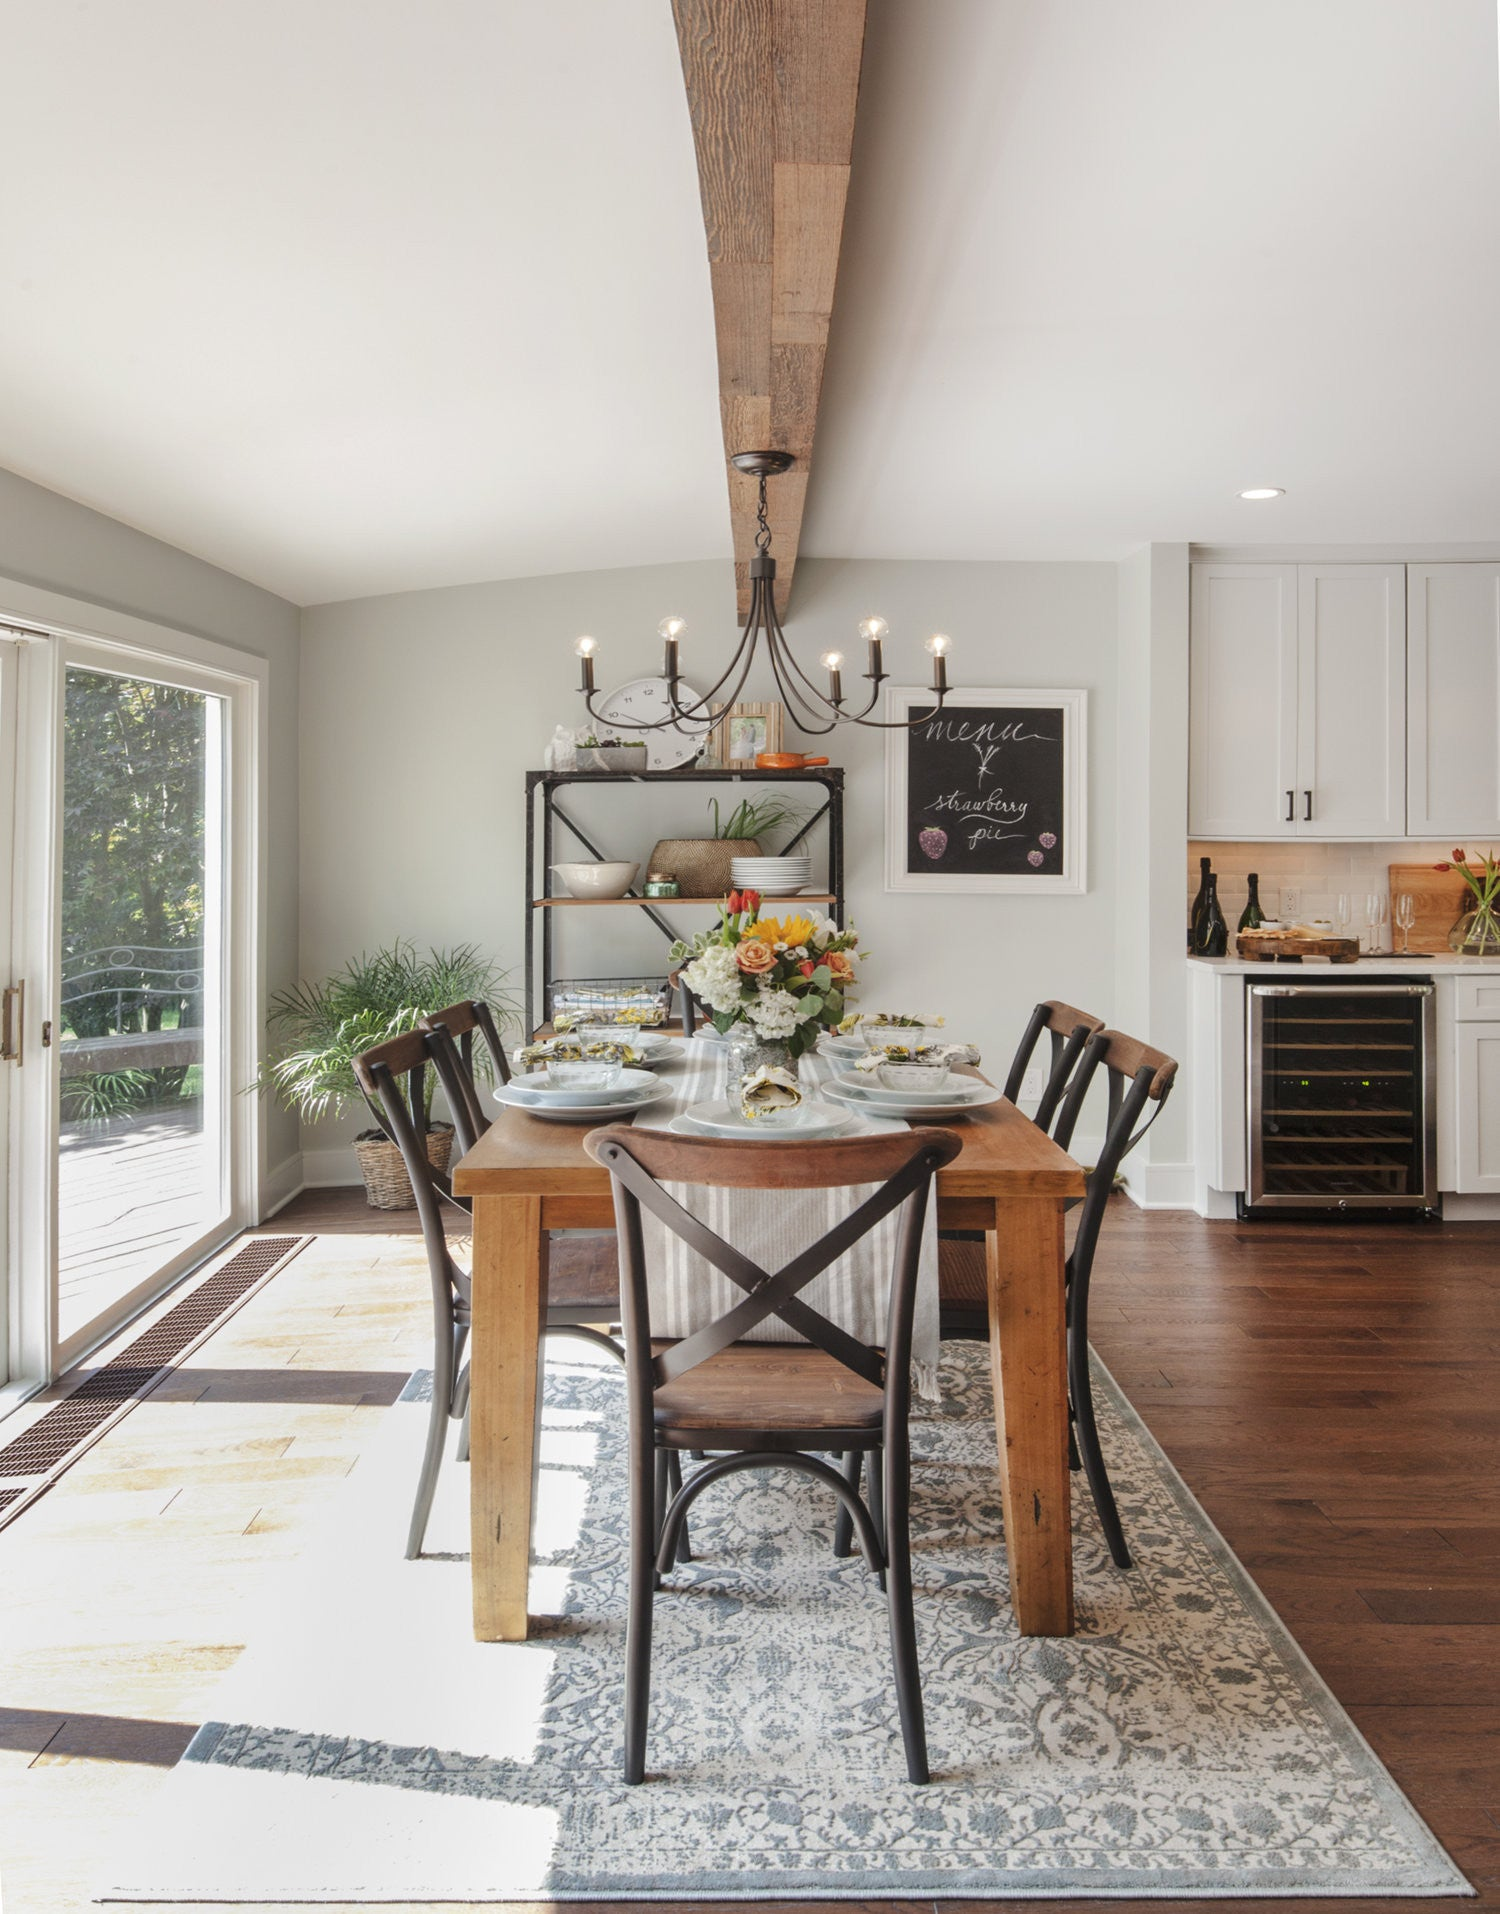 The Large Slider Door And Windows Ensure Theres No Shortage Of Light In This Bright Dining Room Setting Rather Than Settling With Plain White Beams